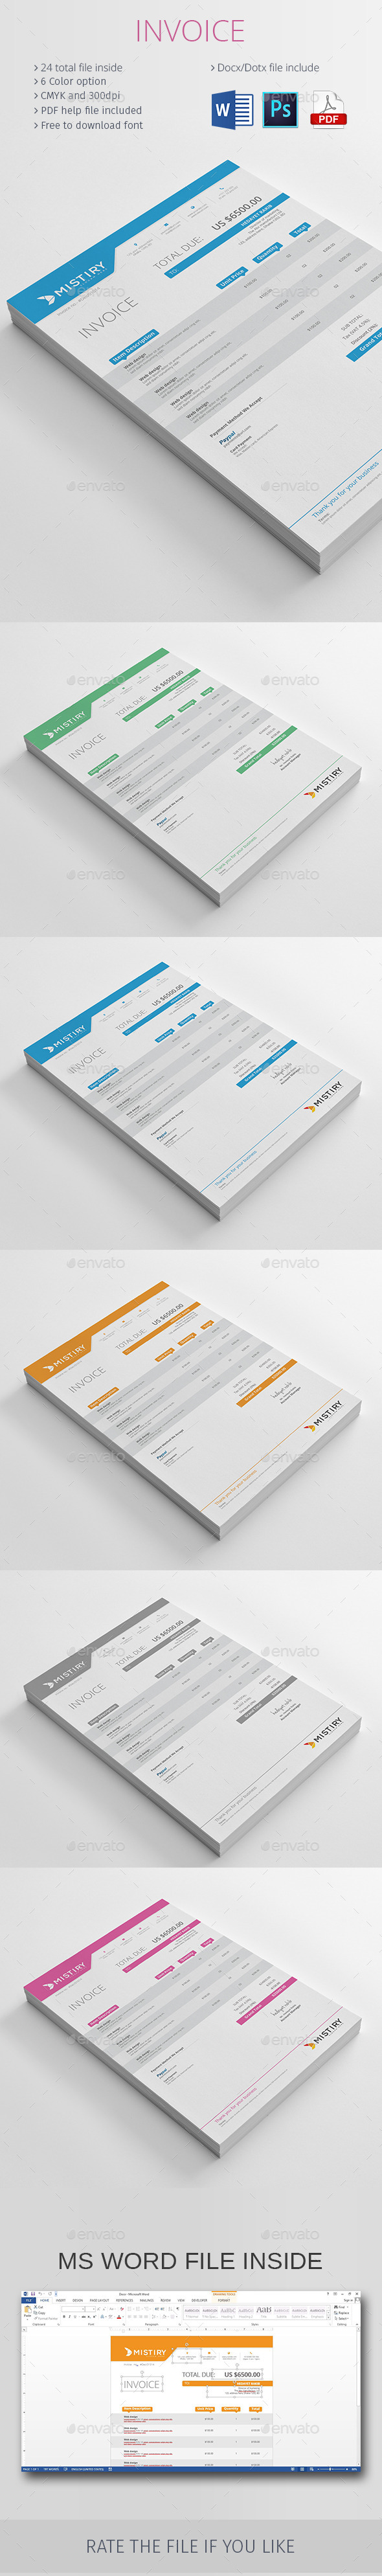 GraphicRiver Invoice 10190610